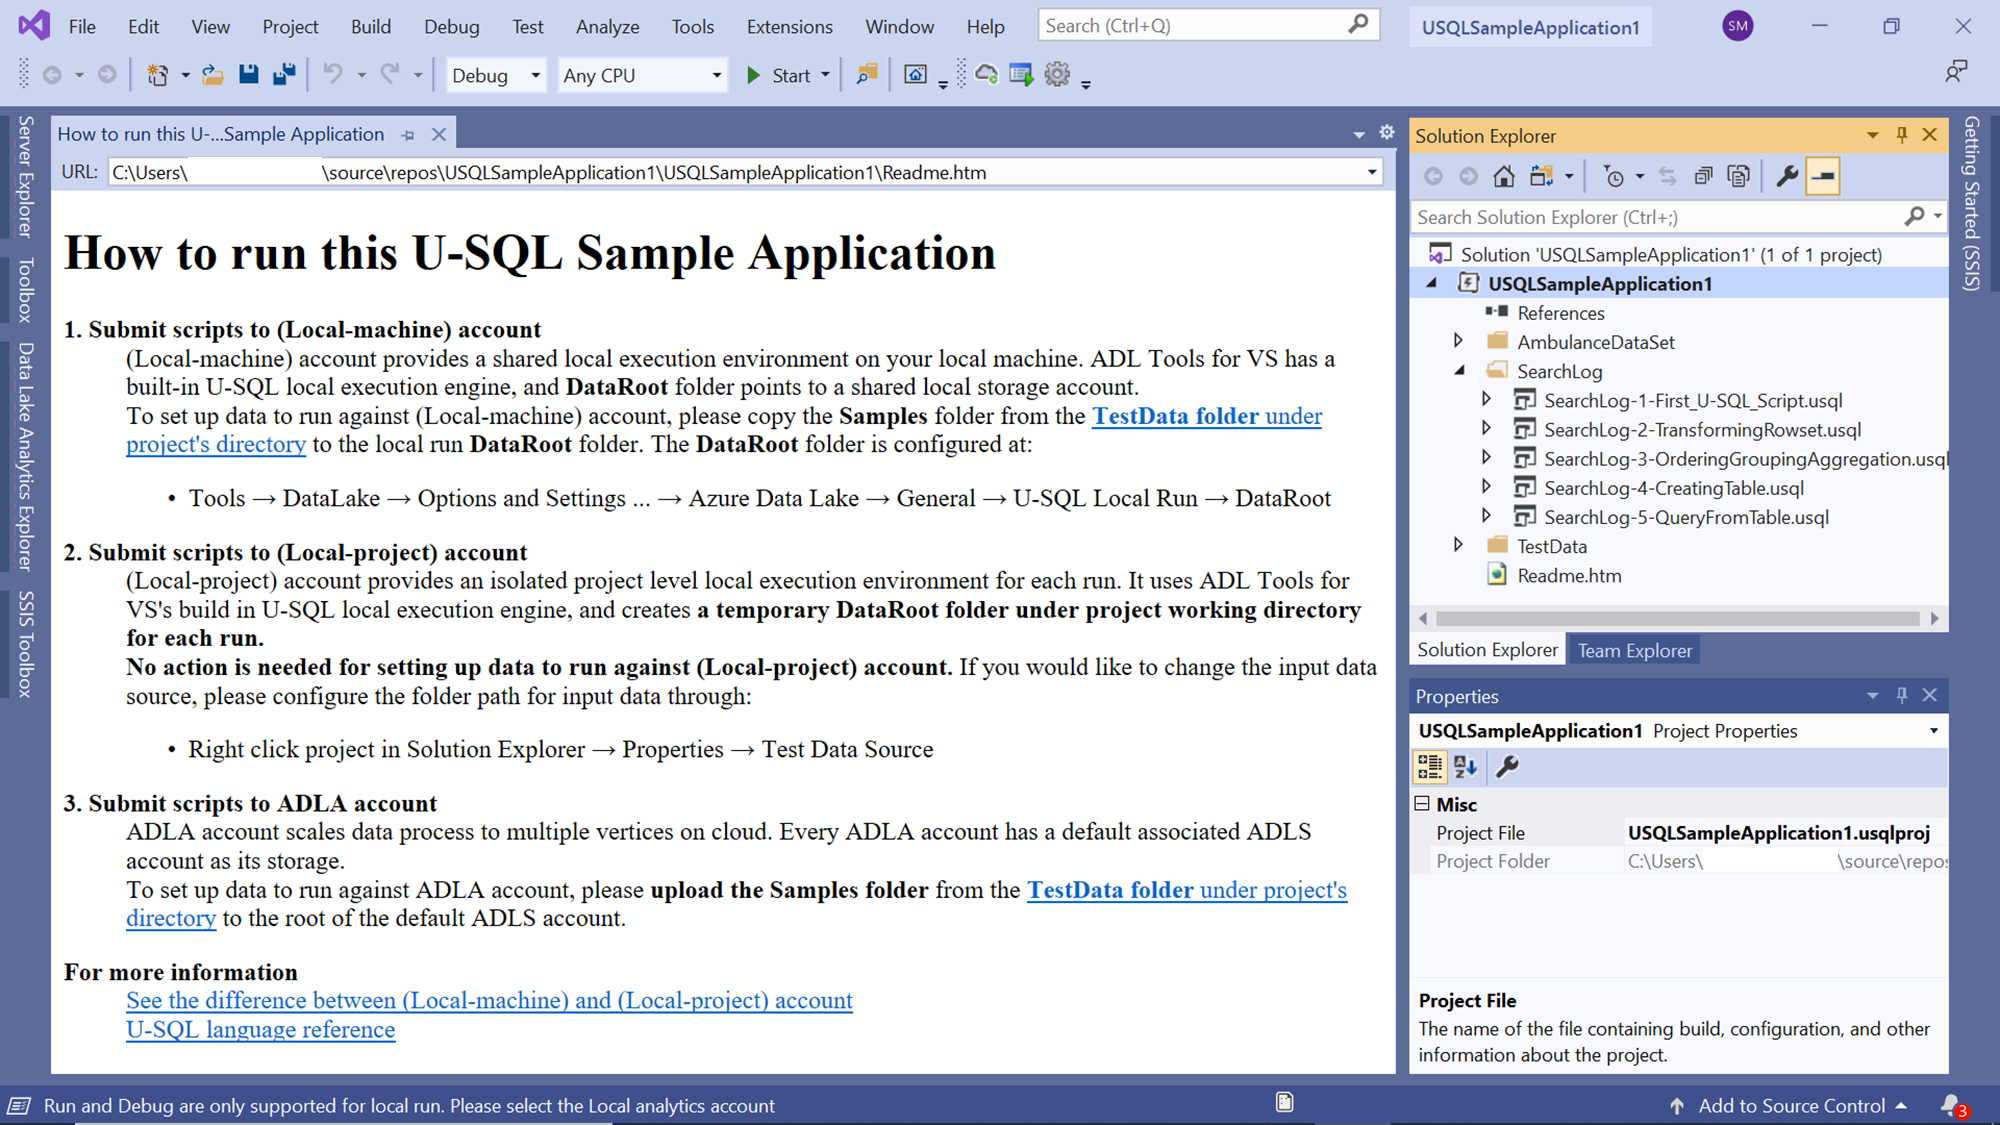 Sample U-SQL application